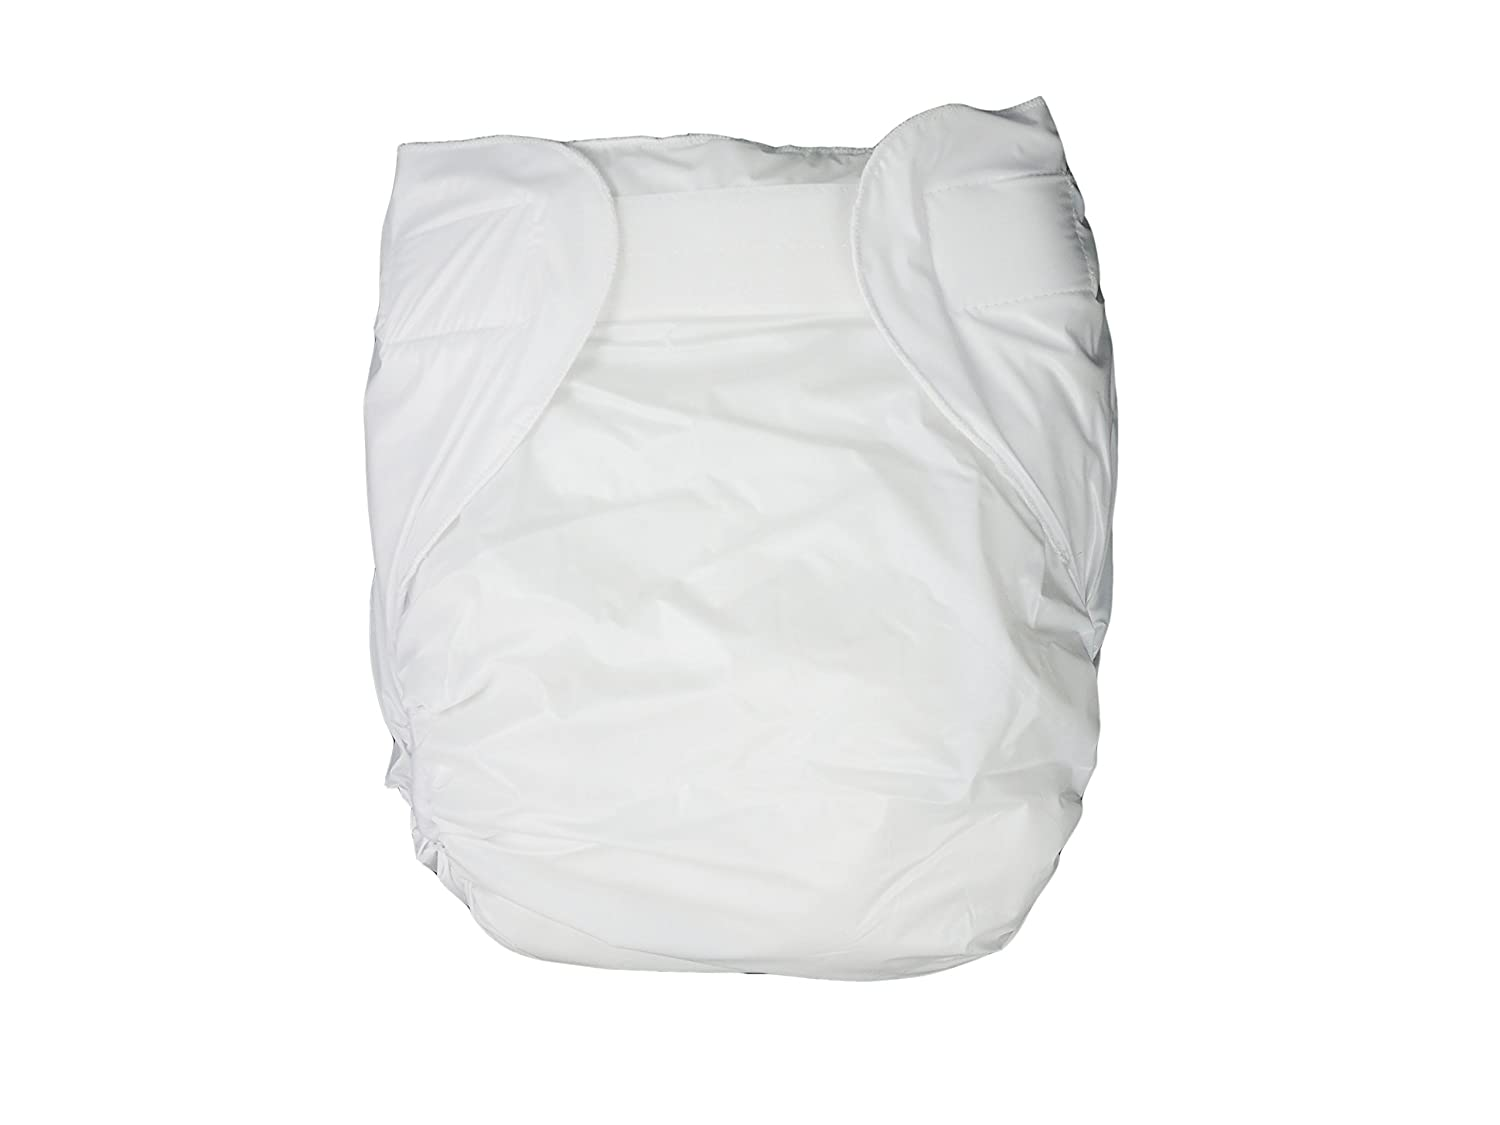 Haian Adult Incontinence AIO velcro PVC Diapers (XLarge, White) Lang Kee